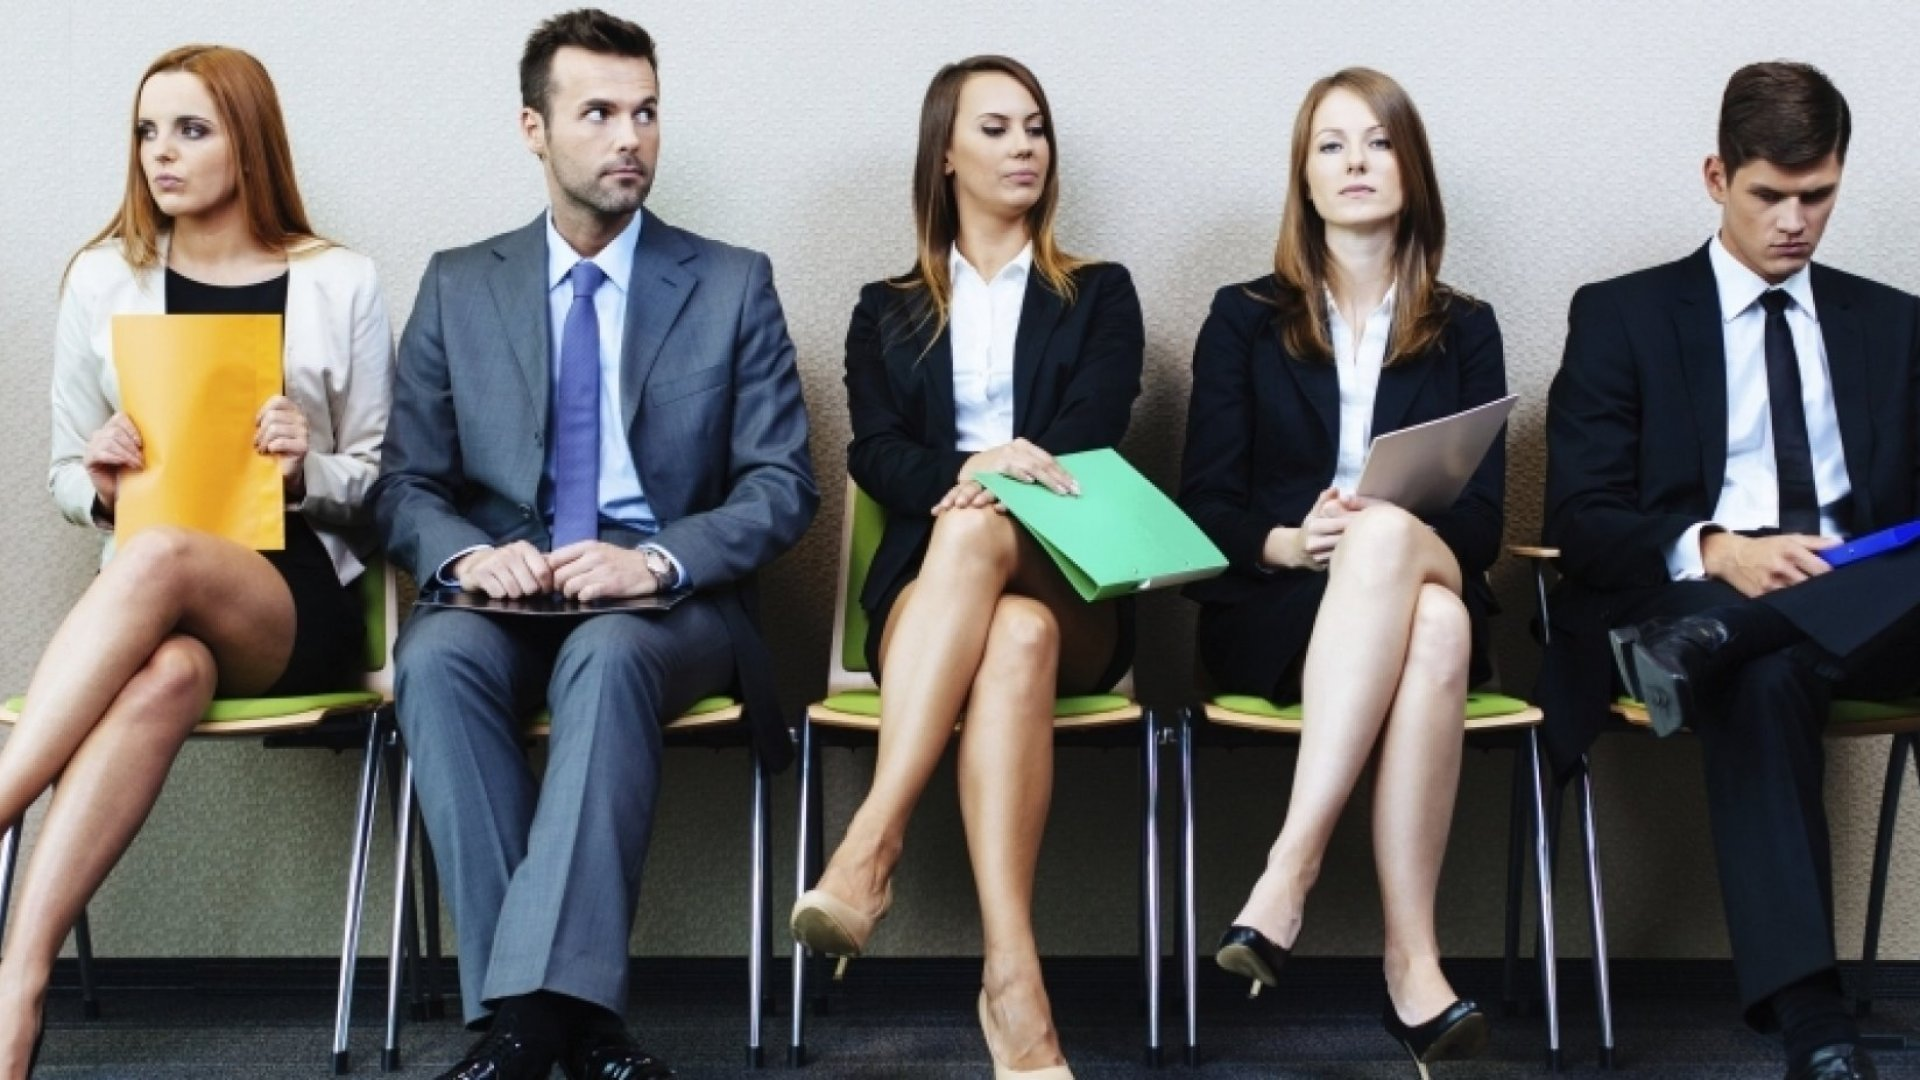 Hiring & the Transparency Tightrope